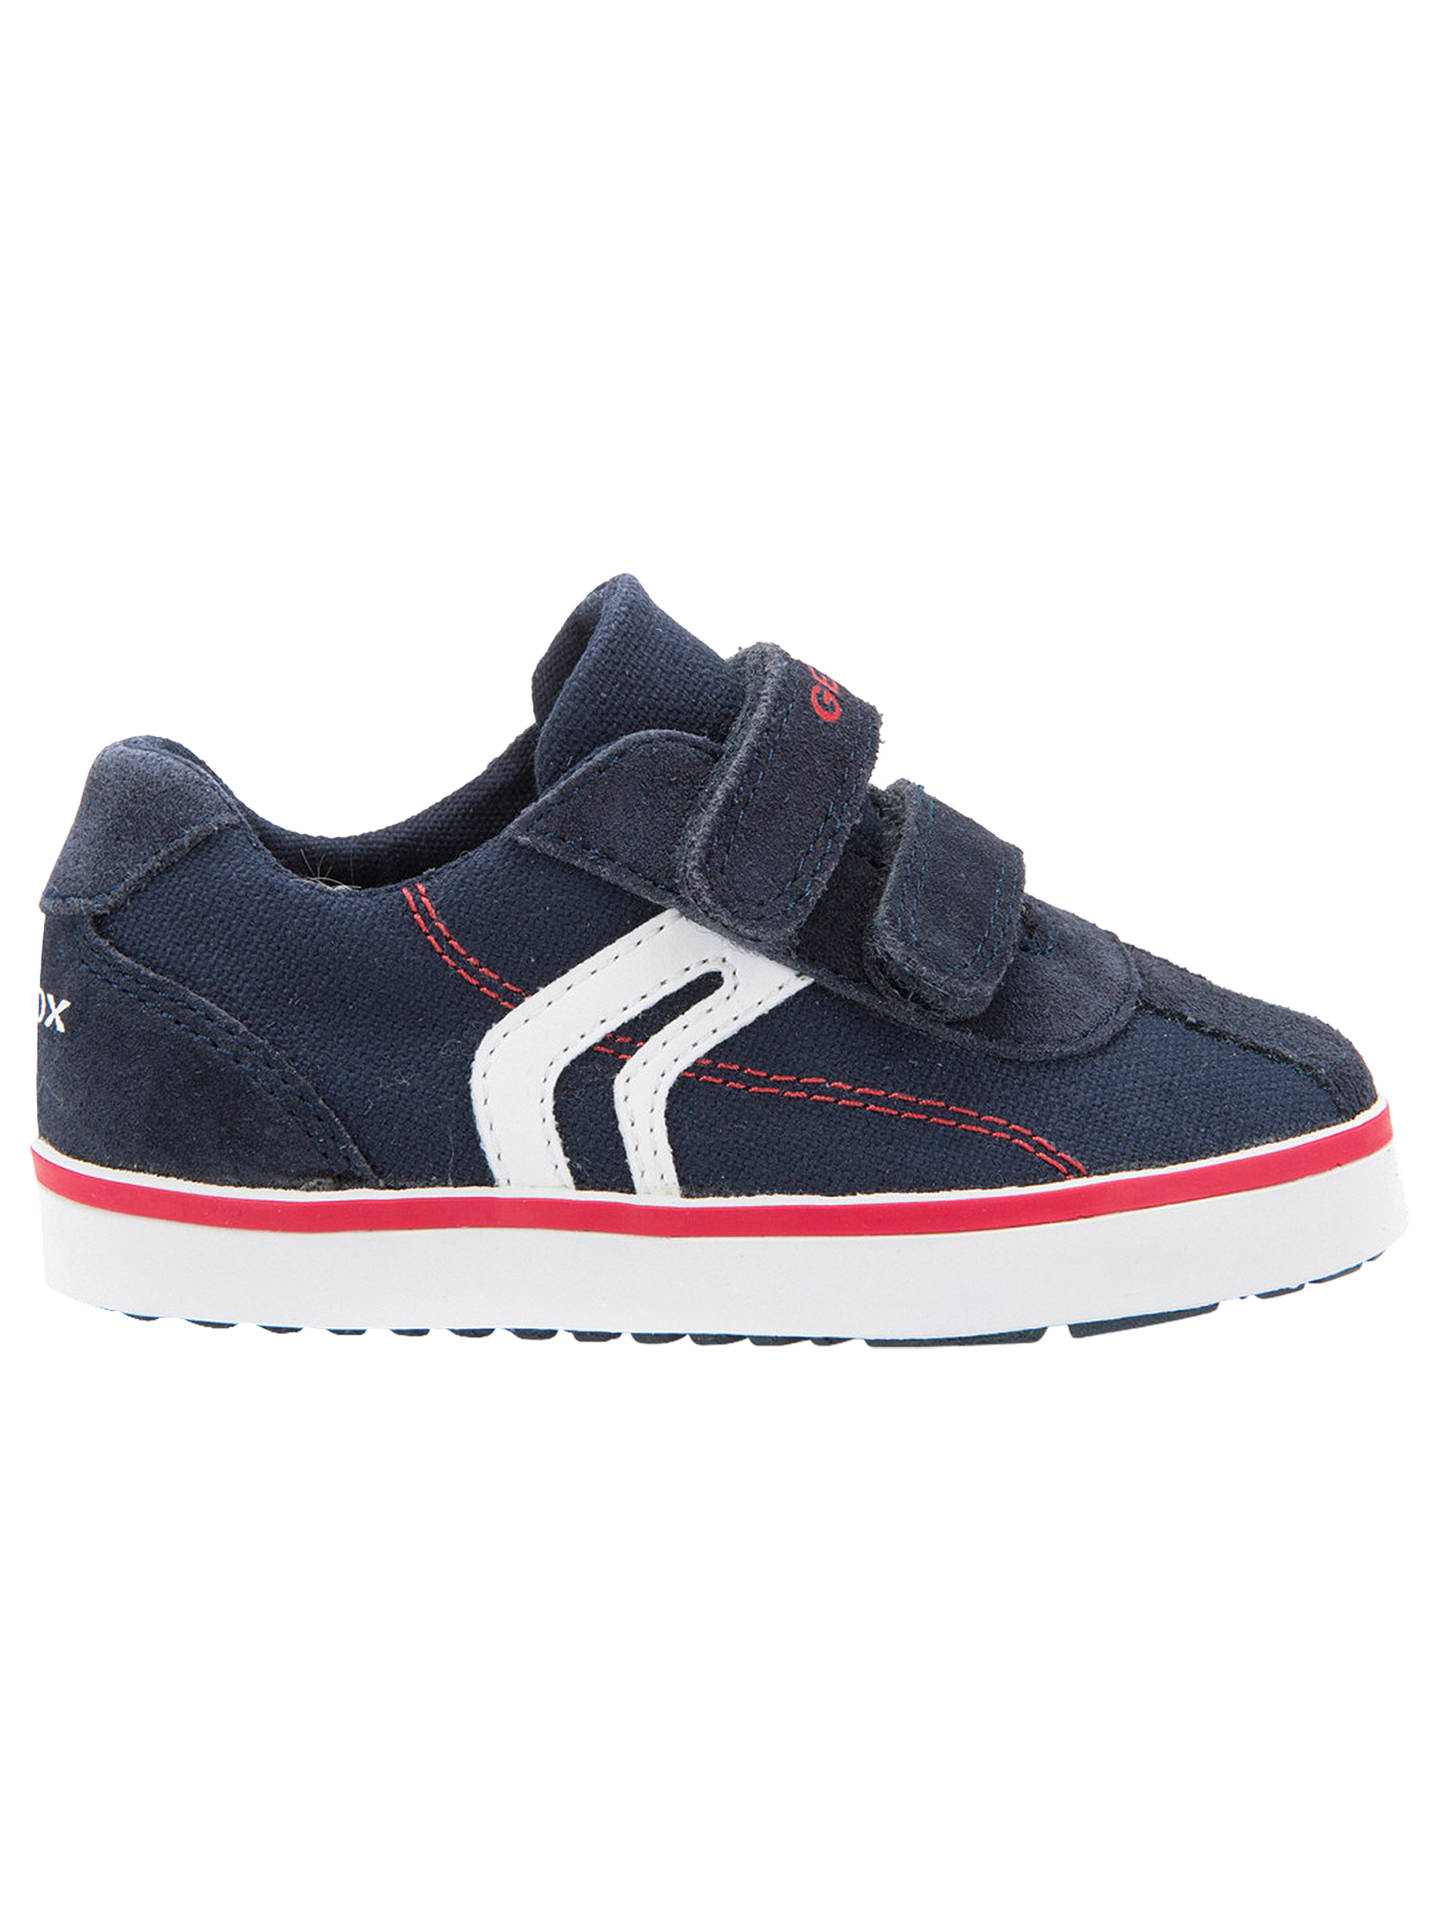 BuyGeox Children s B Kilwi Shoes 8546acd4a58